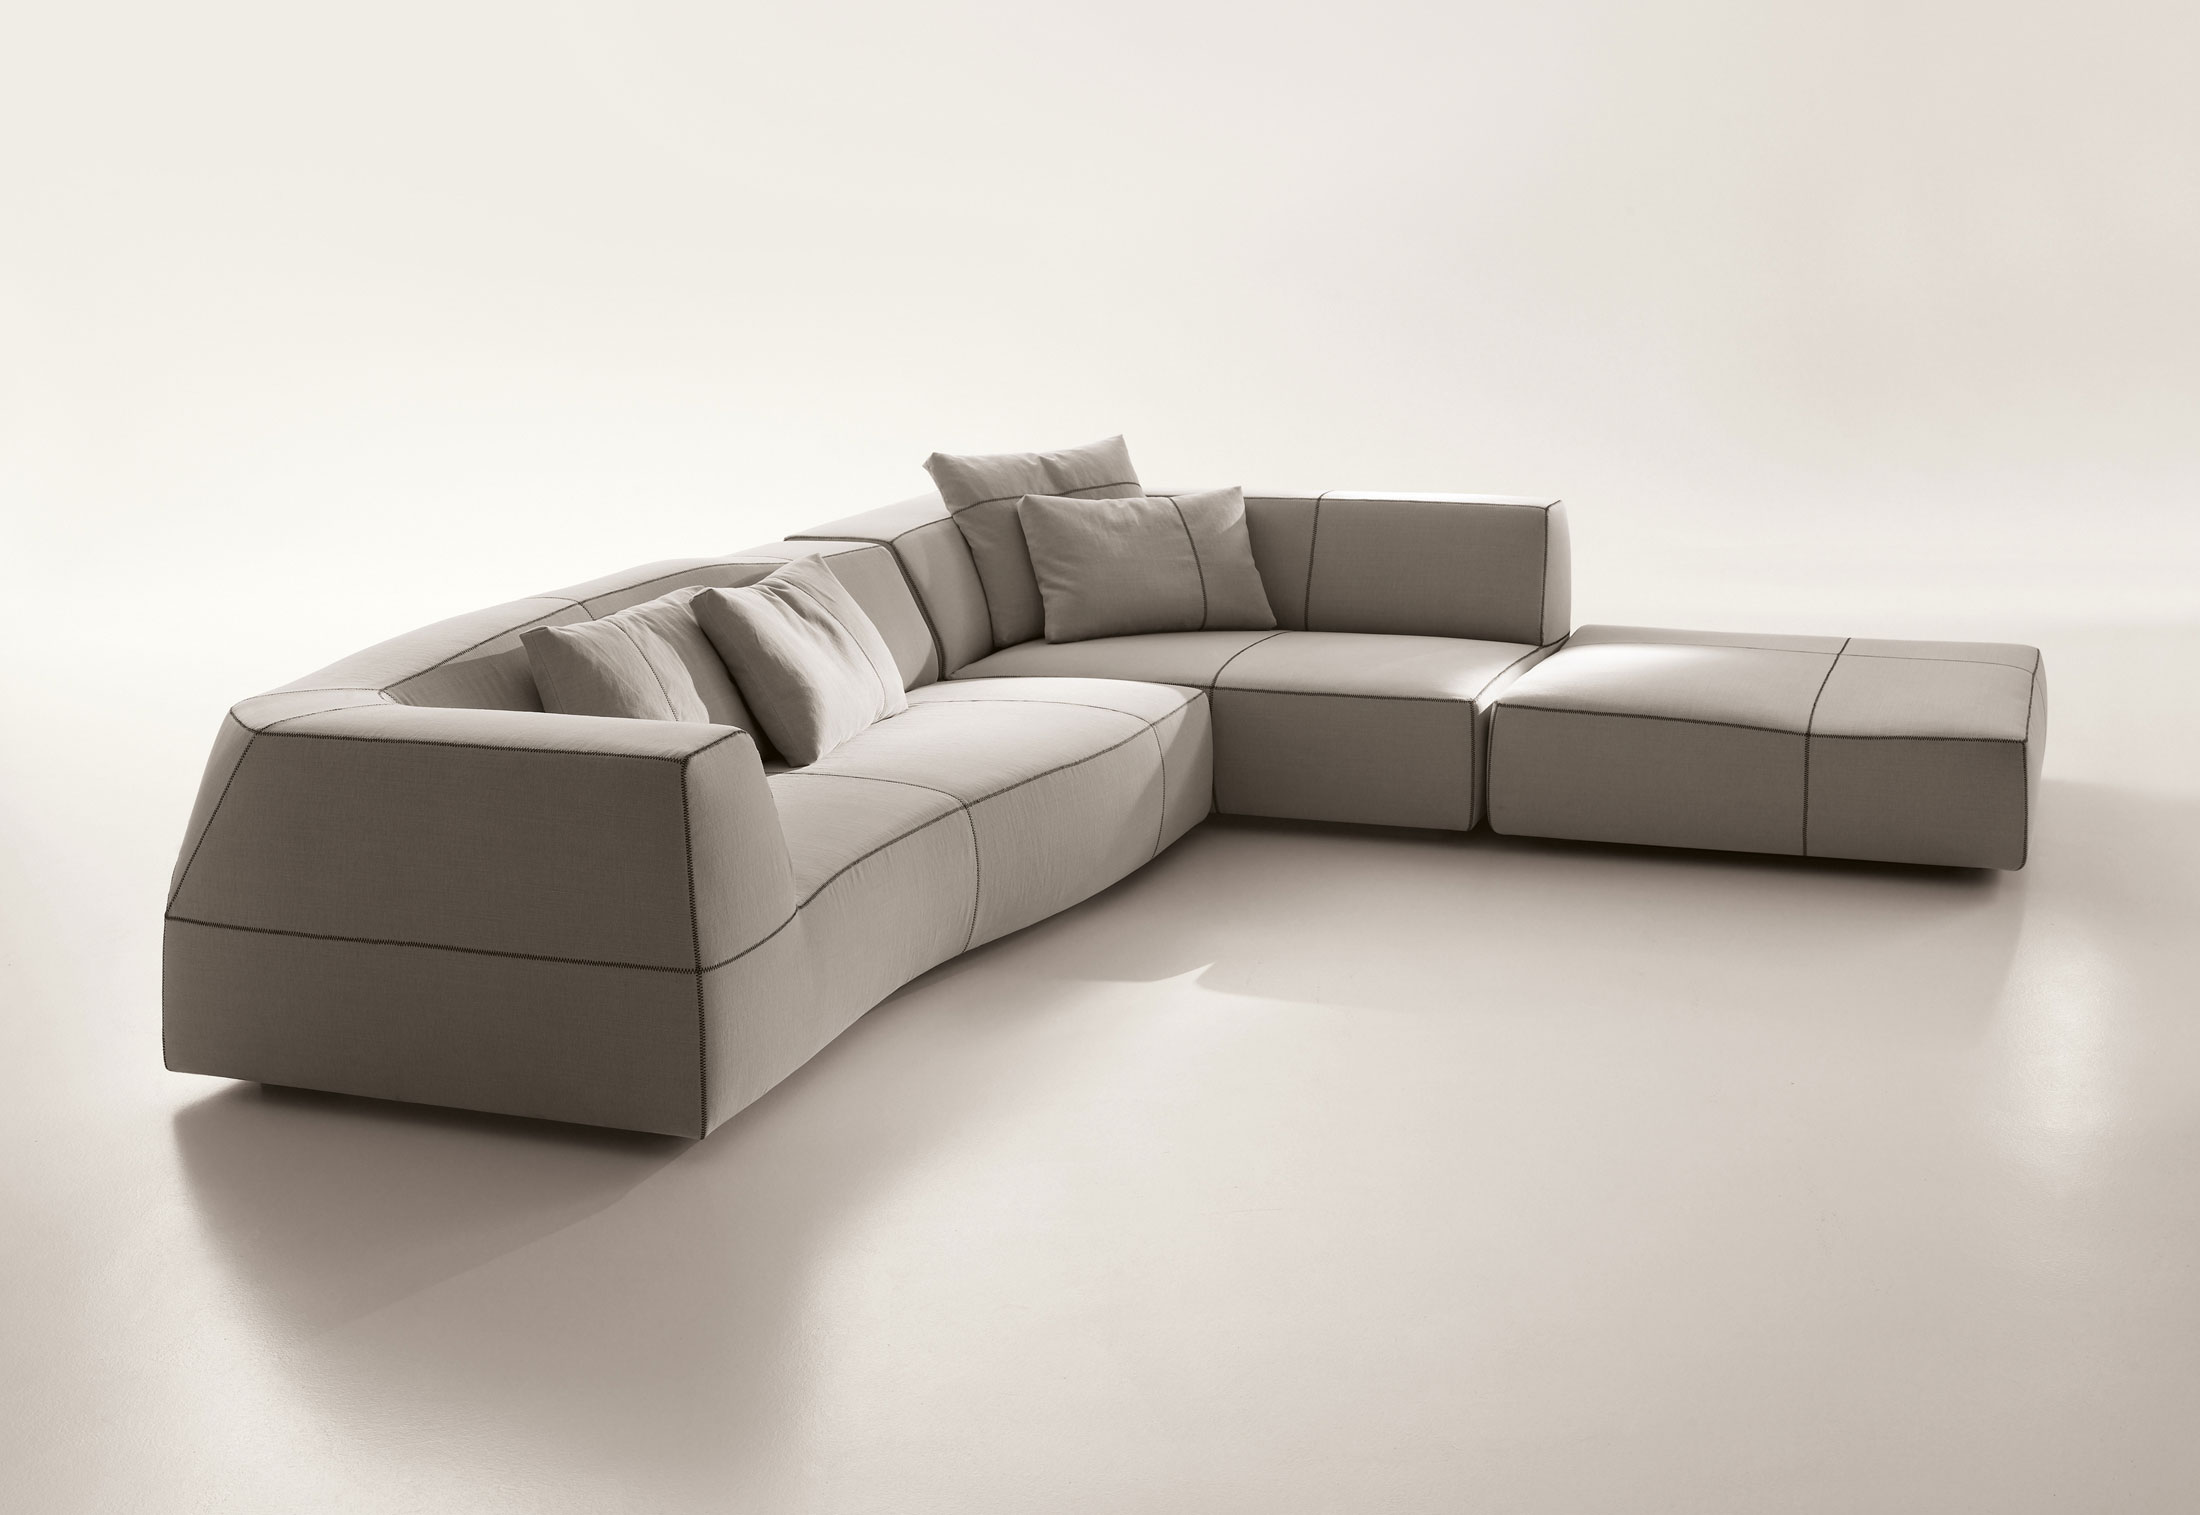 Bend sofa di b b italia divani e poltrone arredamento for B and b divani